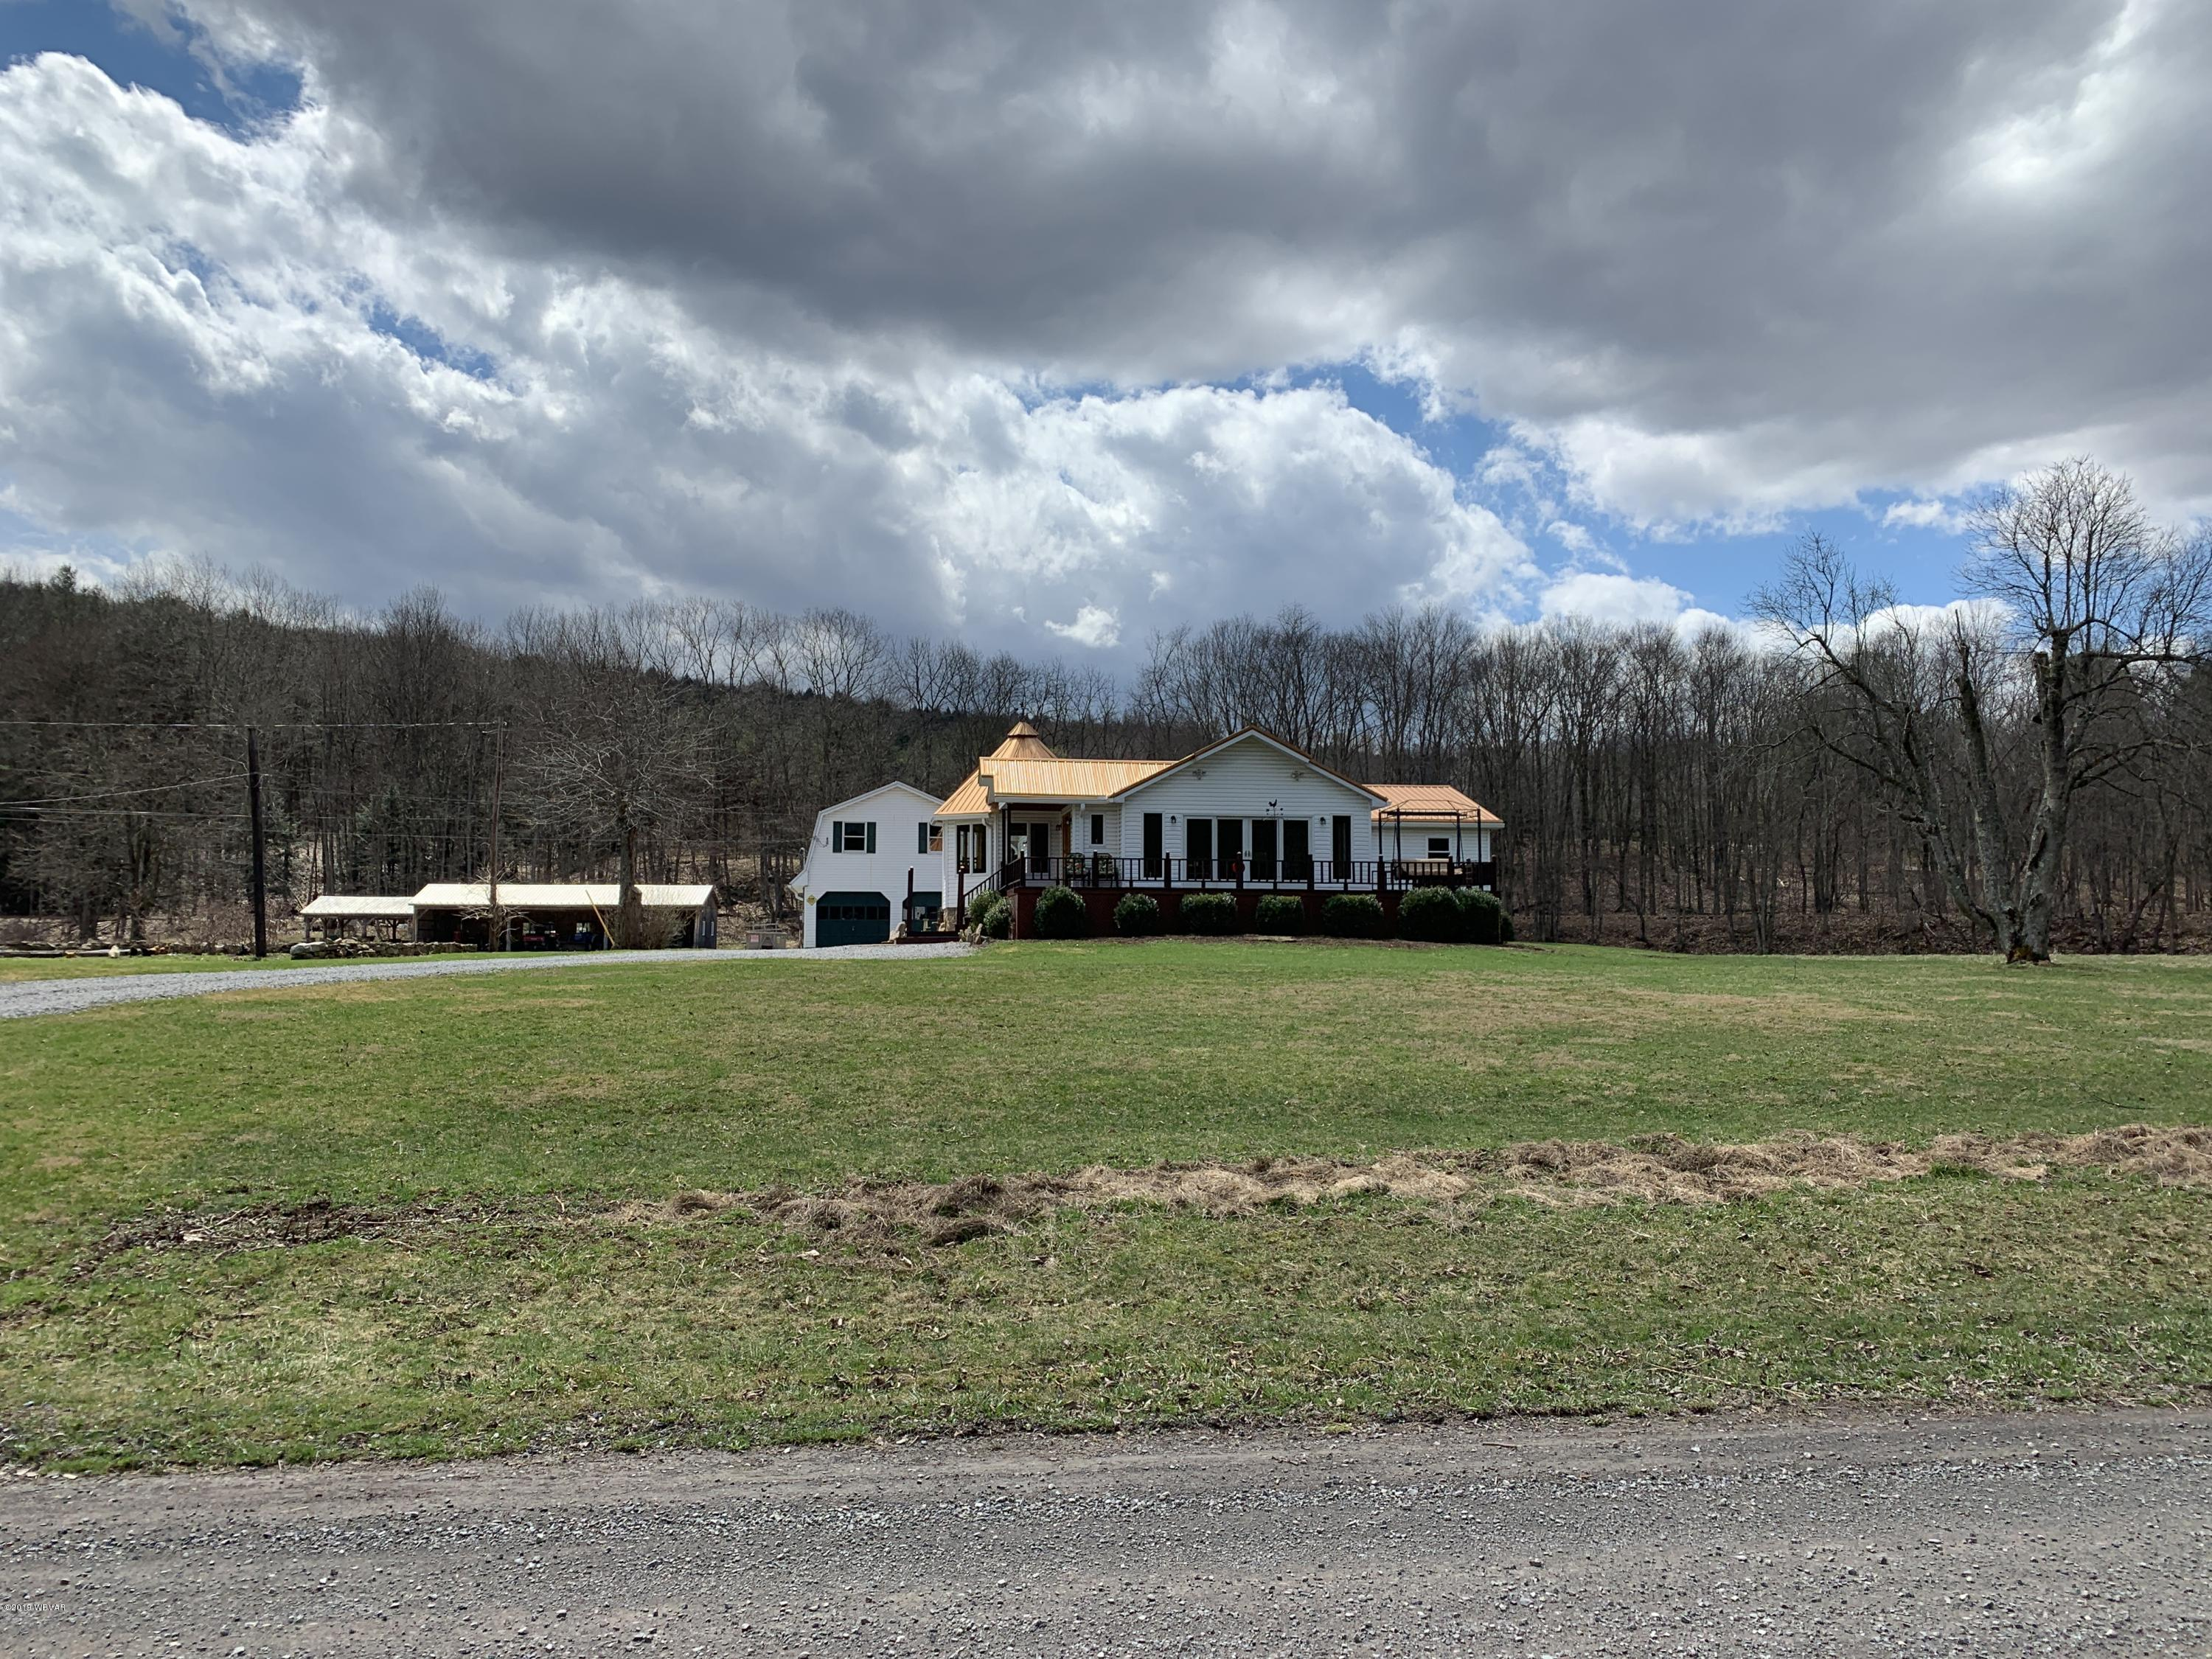 1183 SCRIBBERS ROAD,Clearfield,PA 16830,3 Bedrooms Bedrooms,2 BathroomsBathrooms,Residential,SCRIBBERS,WB-87007